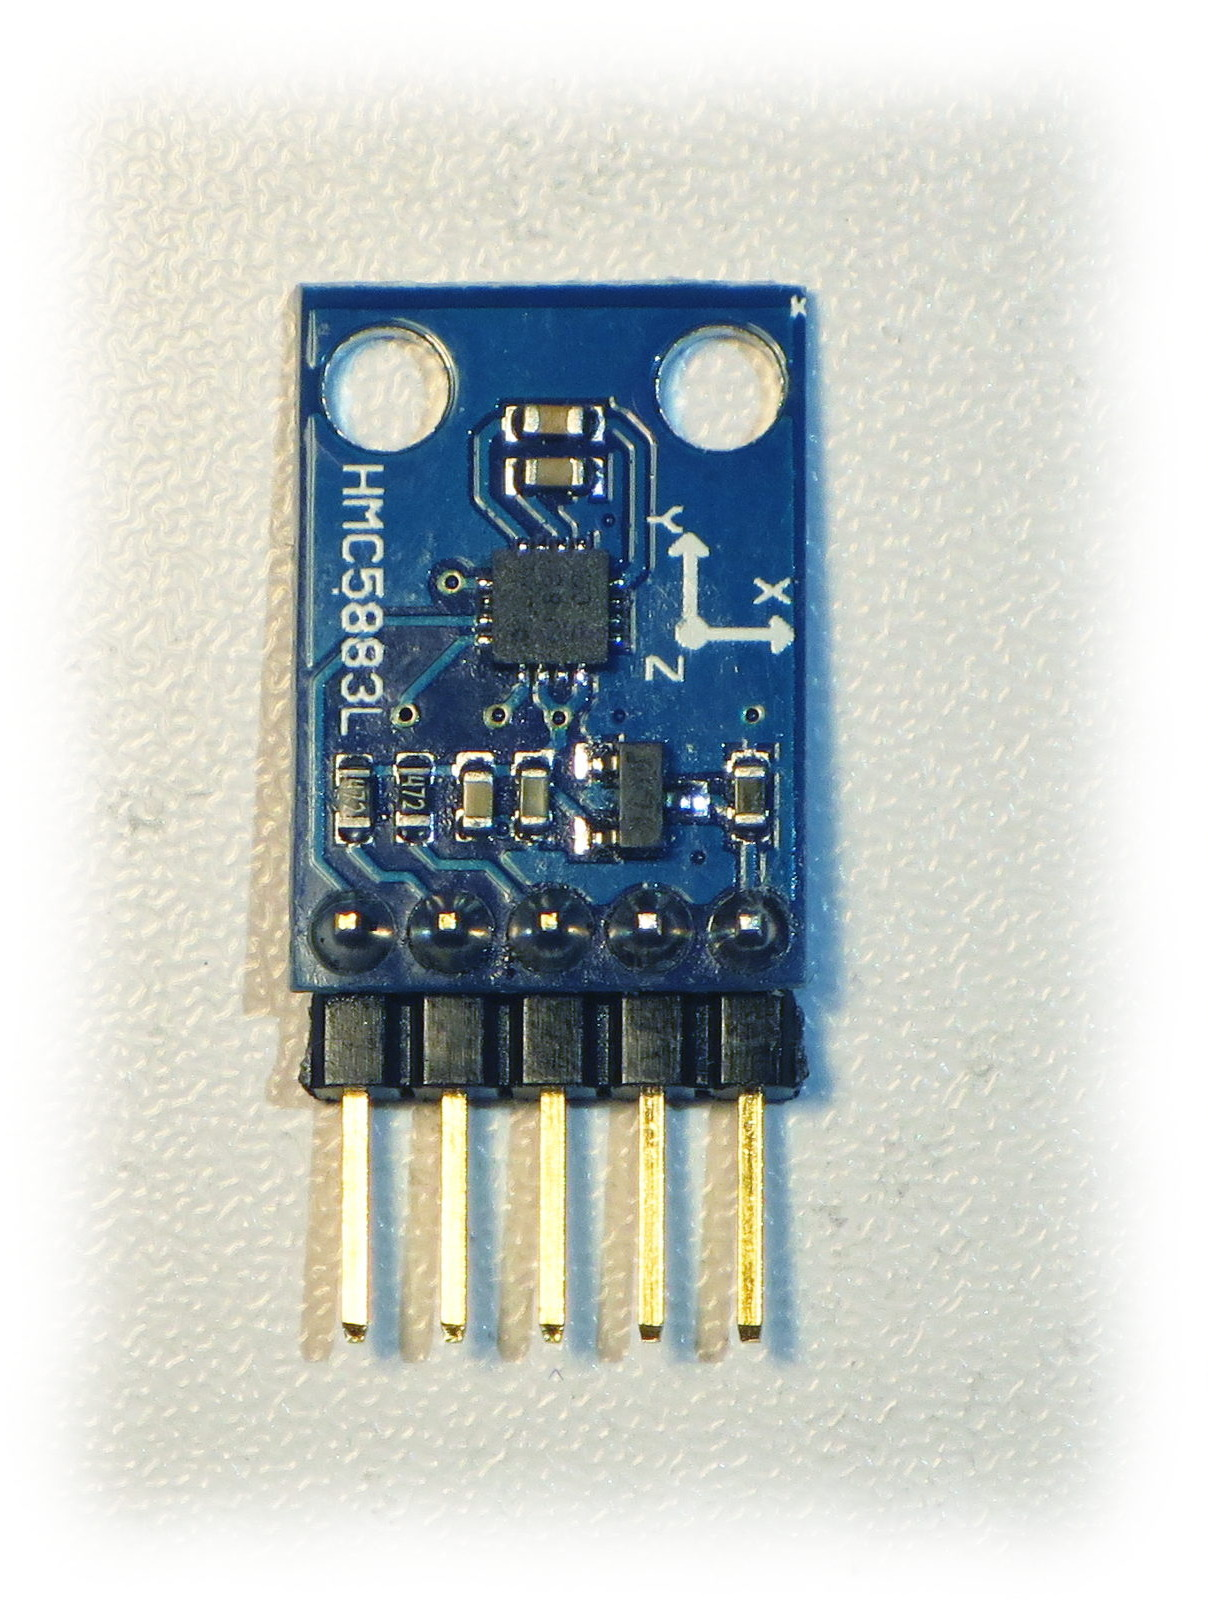 GY273 QMC5883L Triple Axis Magnetometer Breakout - parts